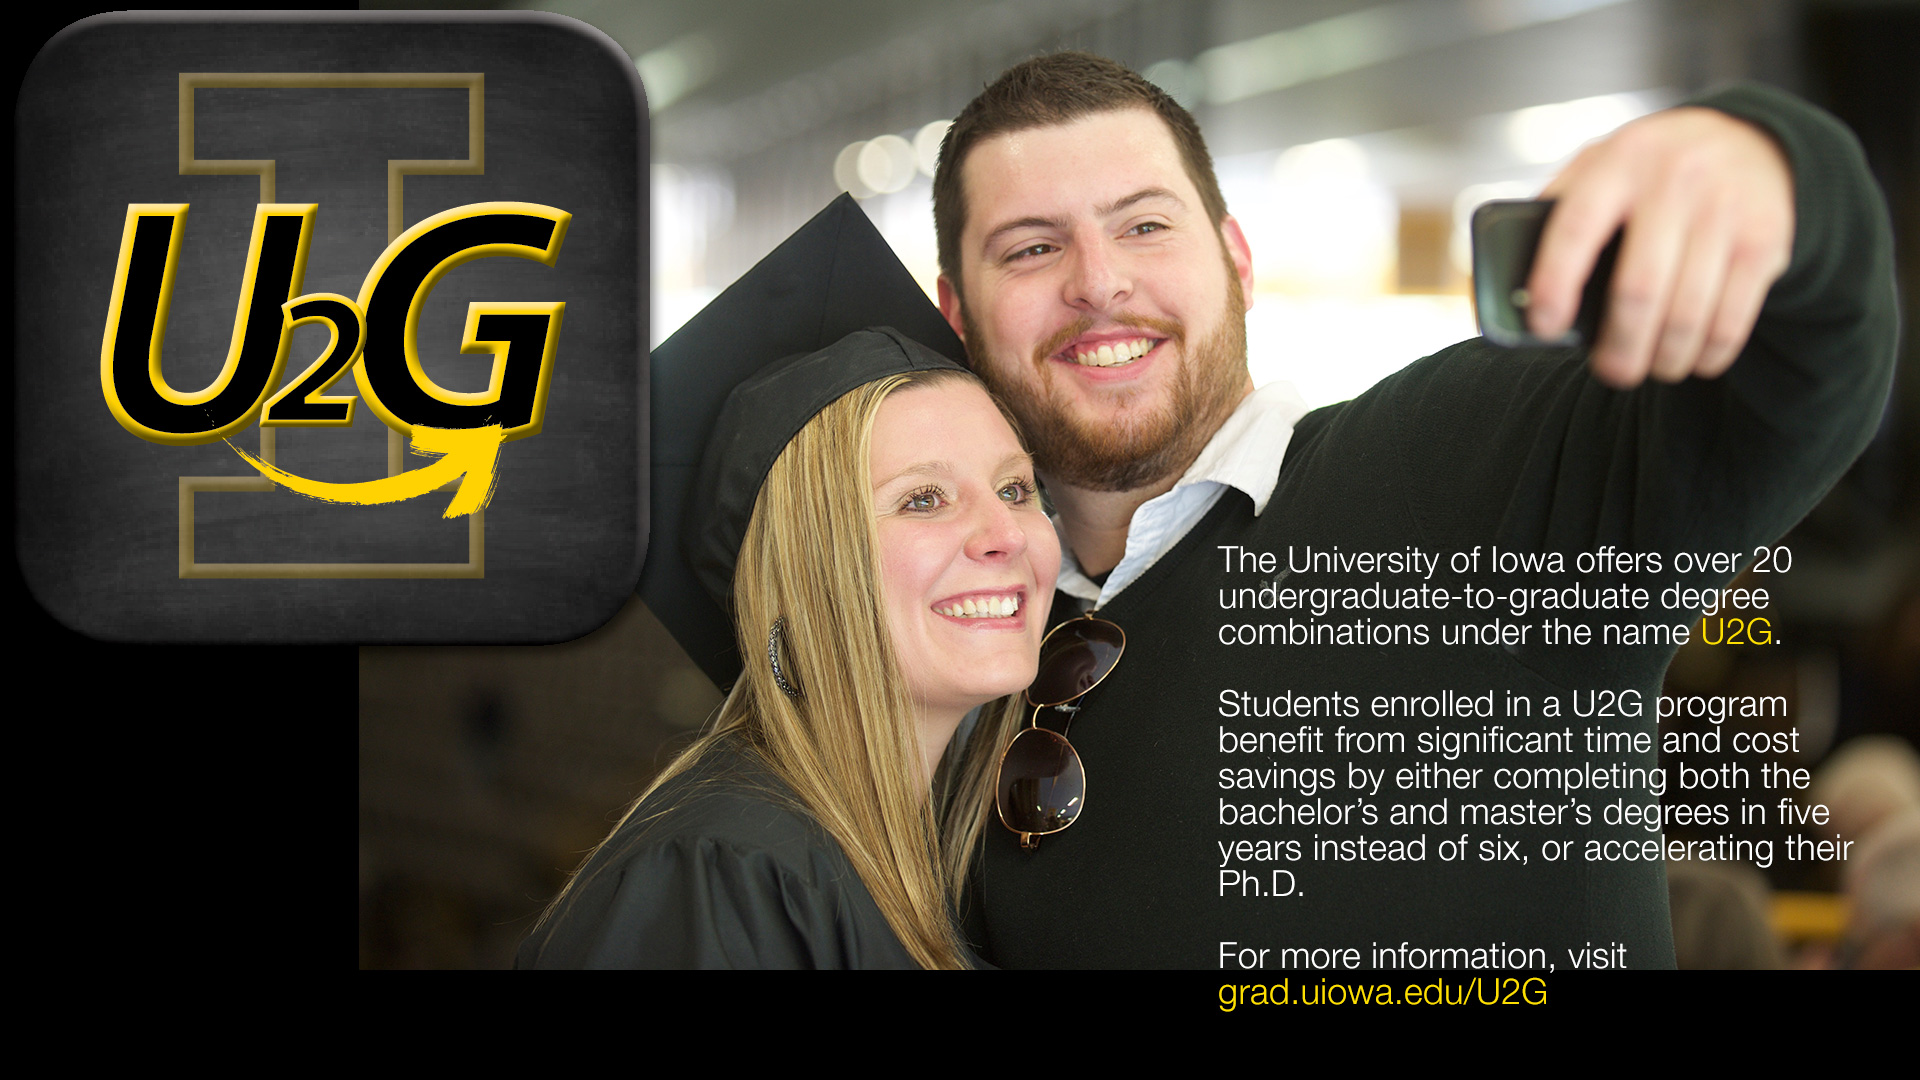 The University of Iowa offers over 20 undergraduate-to-graduate degree combinations under the name U2G. Students enrolled in a U2G program benefit from significant time and cost savings by either completing both the bachelor's and master's degrees in five years instead of six, or accelerating their Ph.D. For more information, visit grad.uiowa.edu/U2G